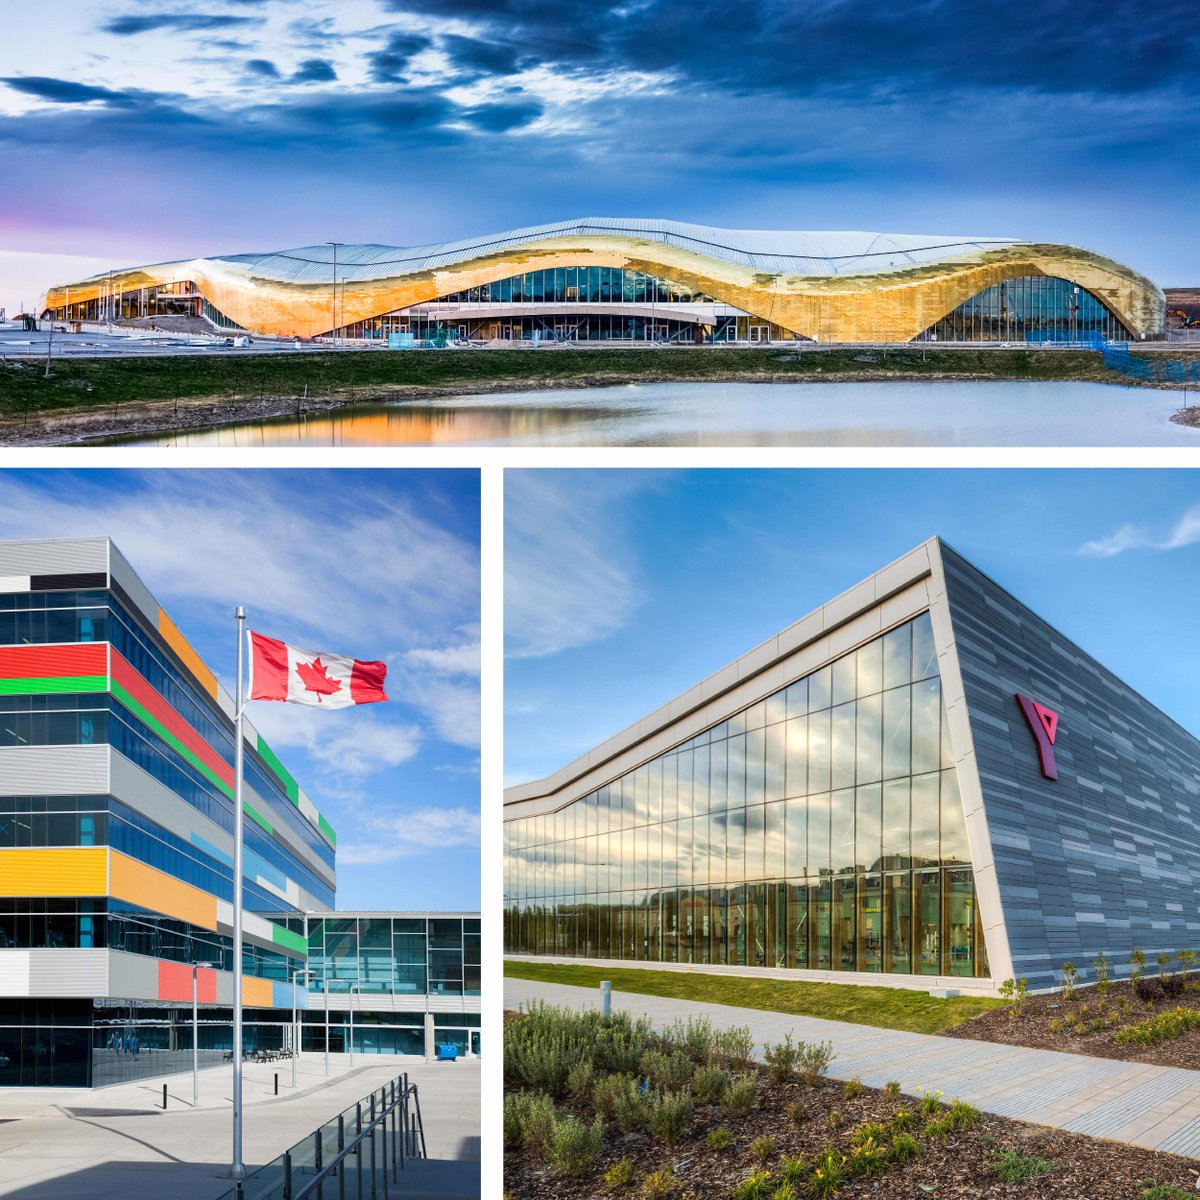 Hey @amazon, did you know #YYC has some of the newest and coolest sport and recreation facilities in Canada? #AmazonYYC #amazon #recreation <br>http://pic.twitter.com/ka8n3Ka3IW